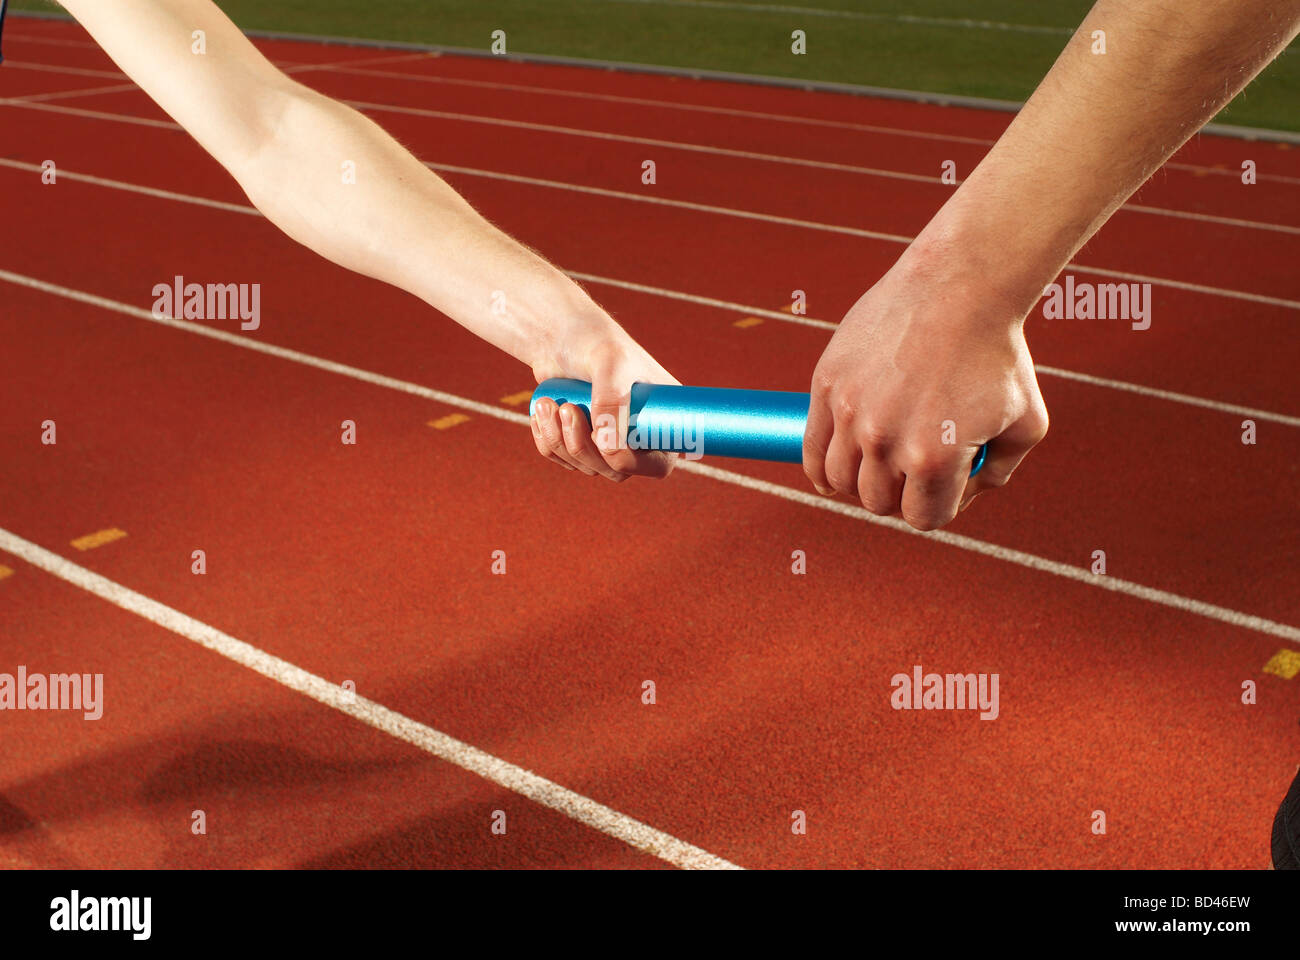 relay baton being exchanged - Stock Image